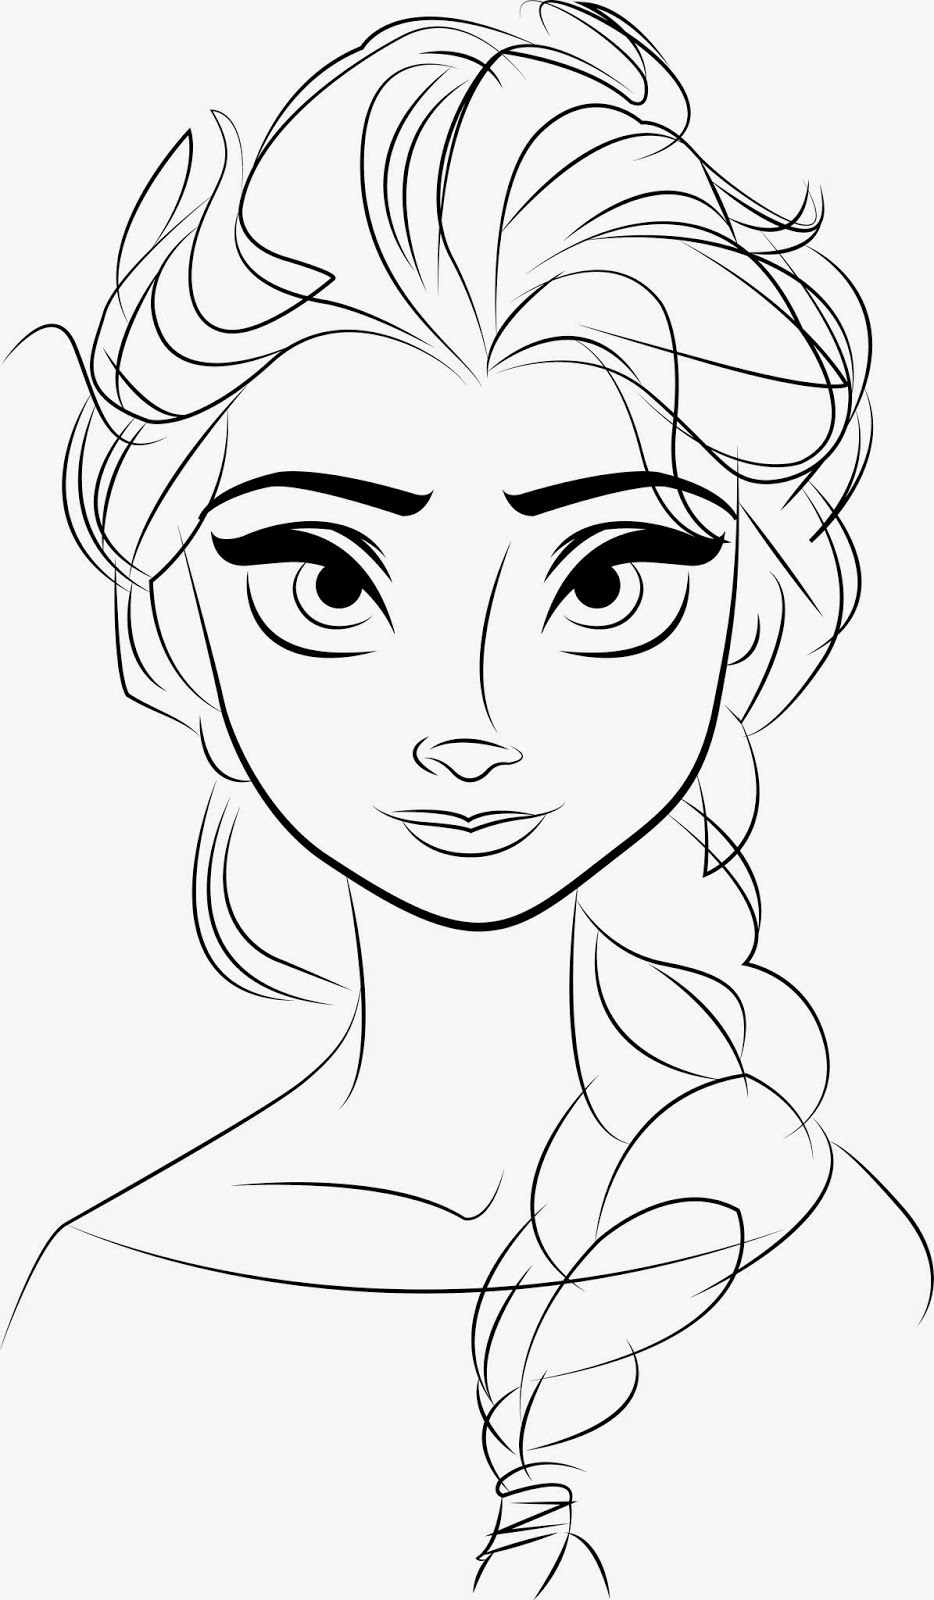 free printable coloring pictures free printable bambi coloring pages for kids pictures printable free coloring